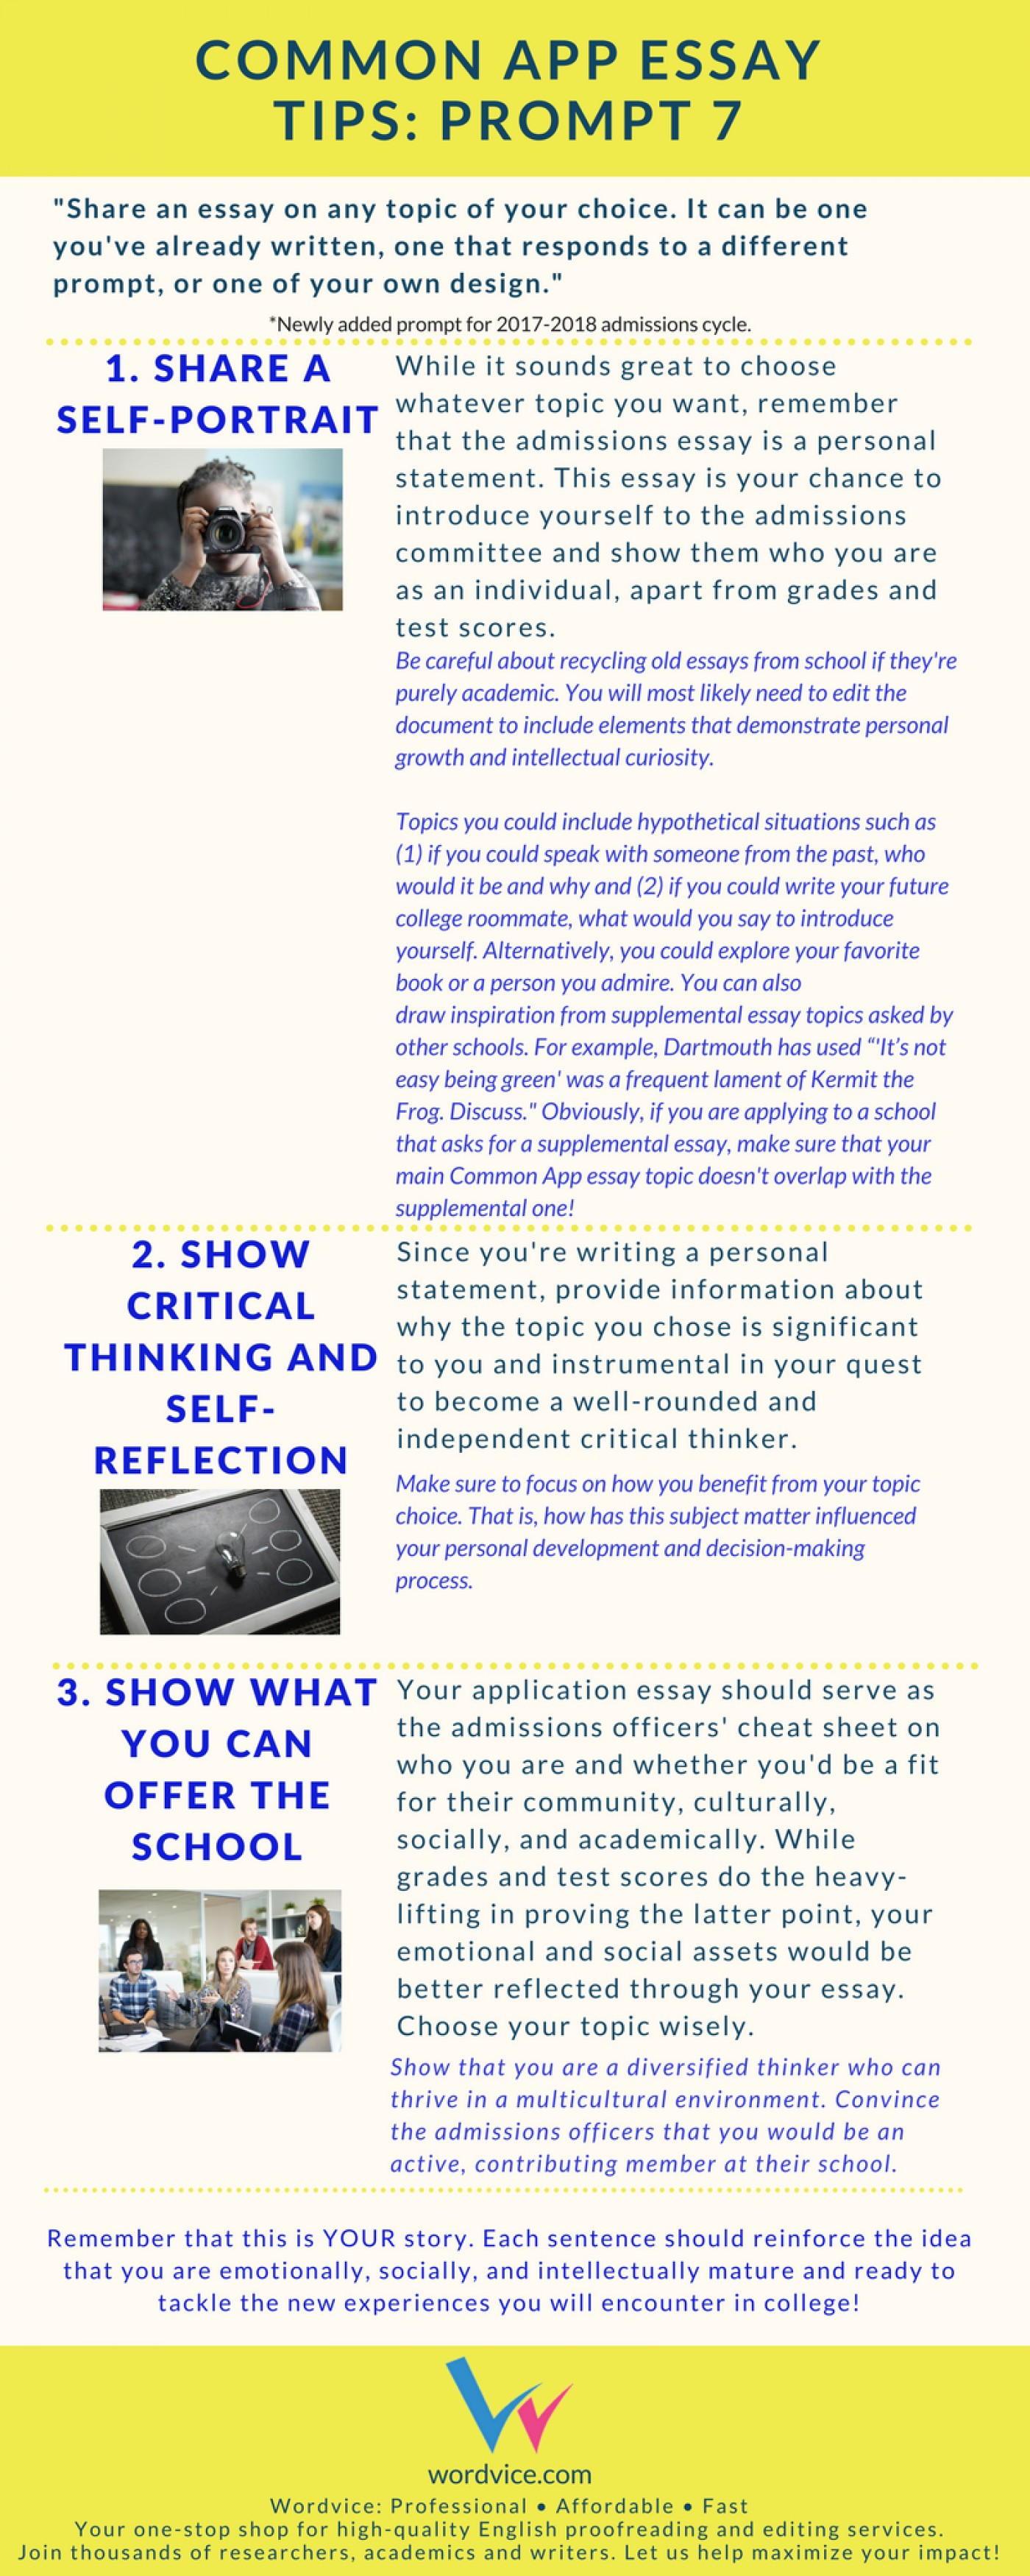 007 Common App Brainstormprompt Essay Example Formidable Prompts Examples Prompt 1 Transfer 2017 2015 1400